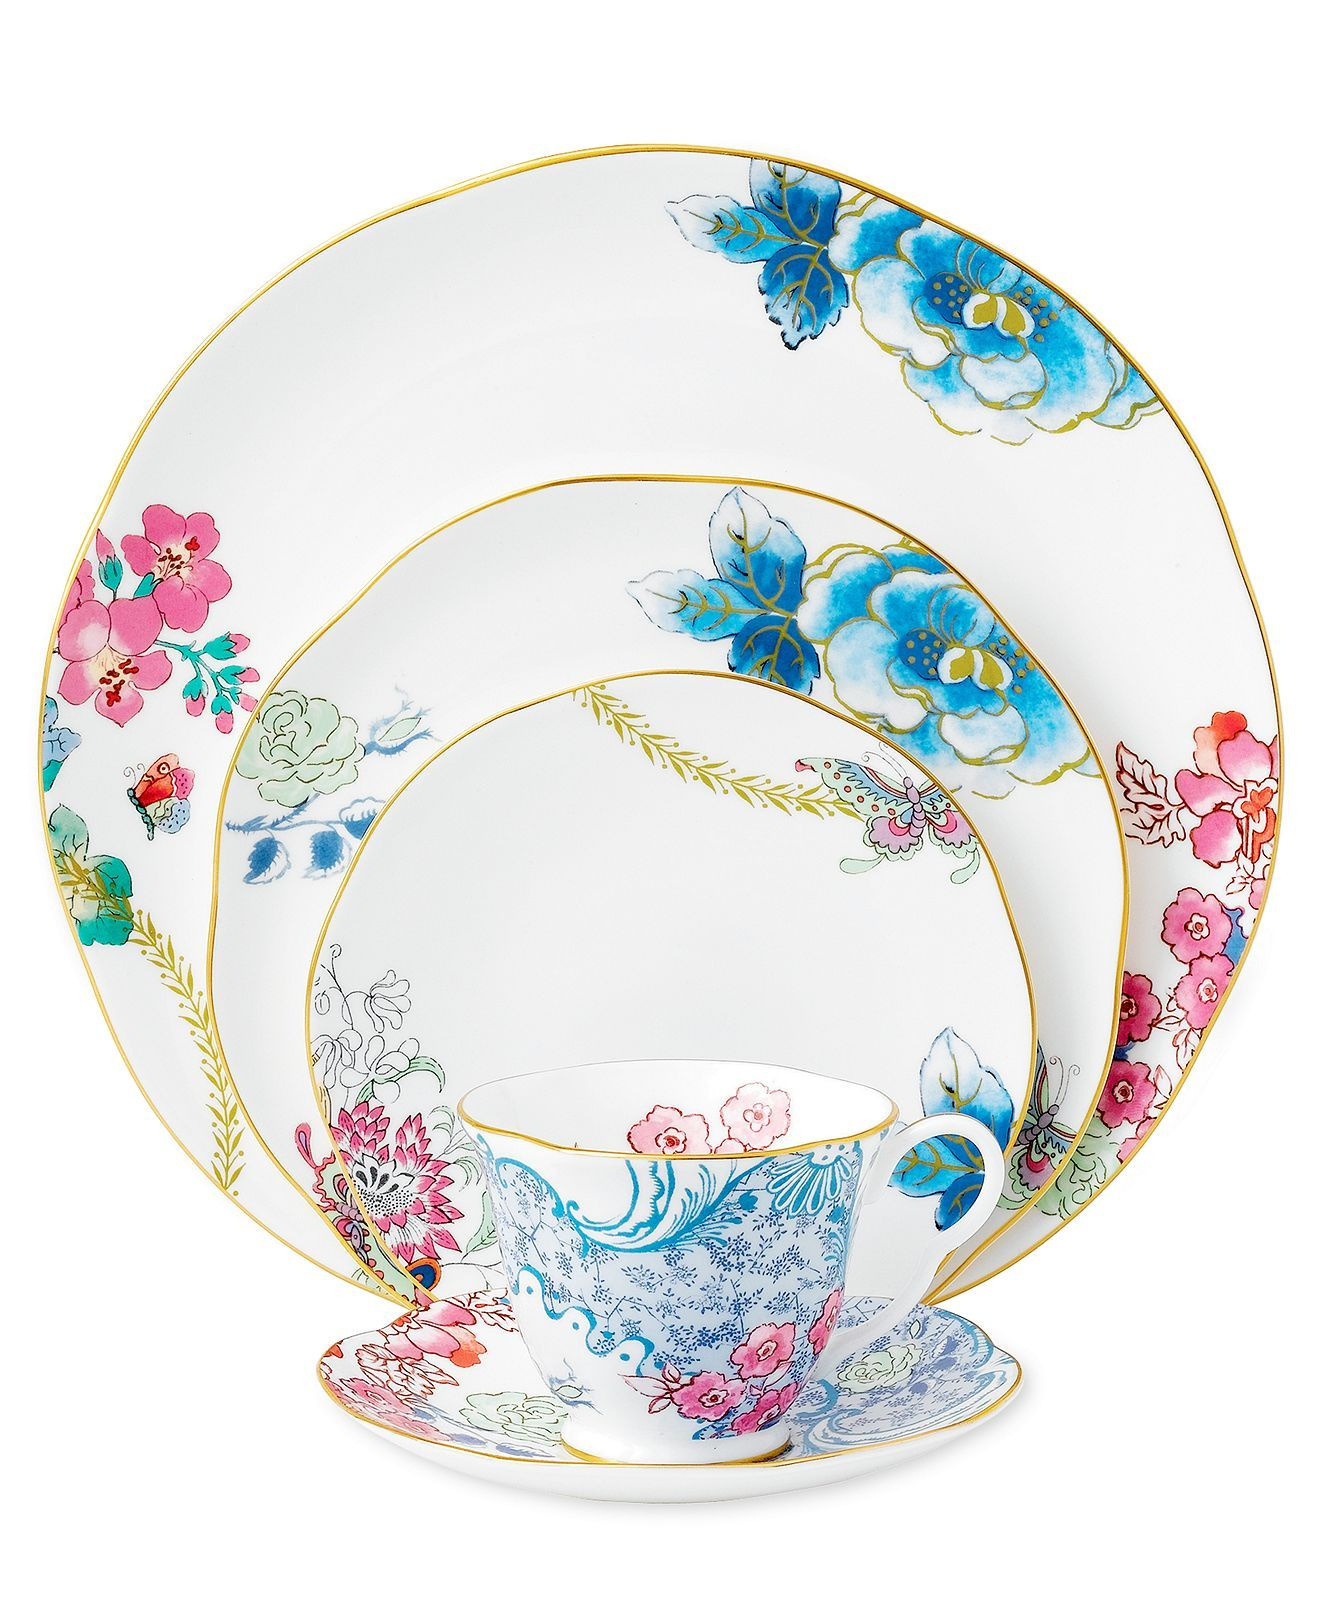 Fine China Patterns wedgwood dinnerware, butterfly bloom collection | fine china